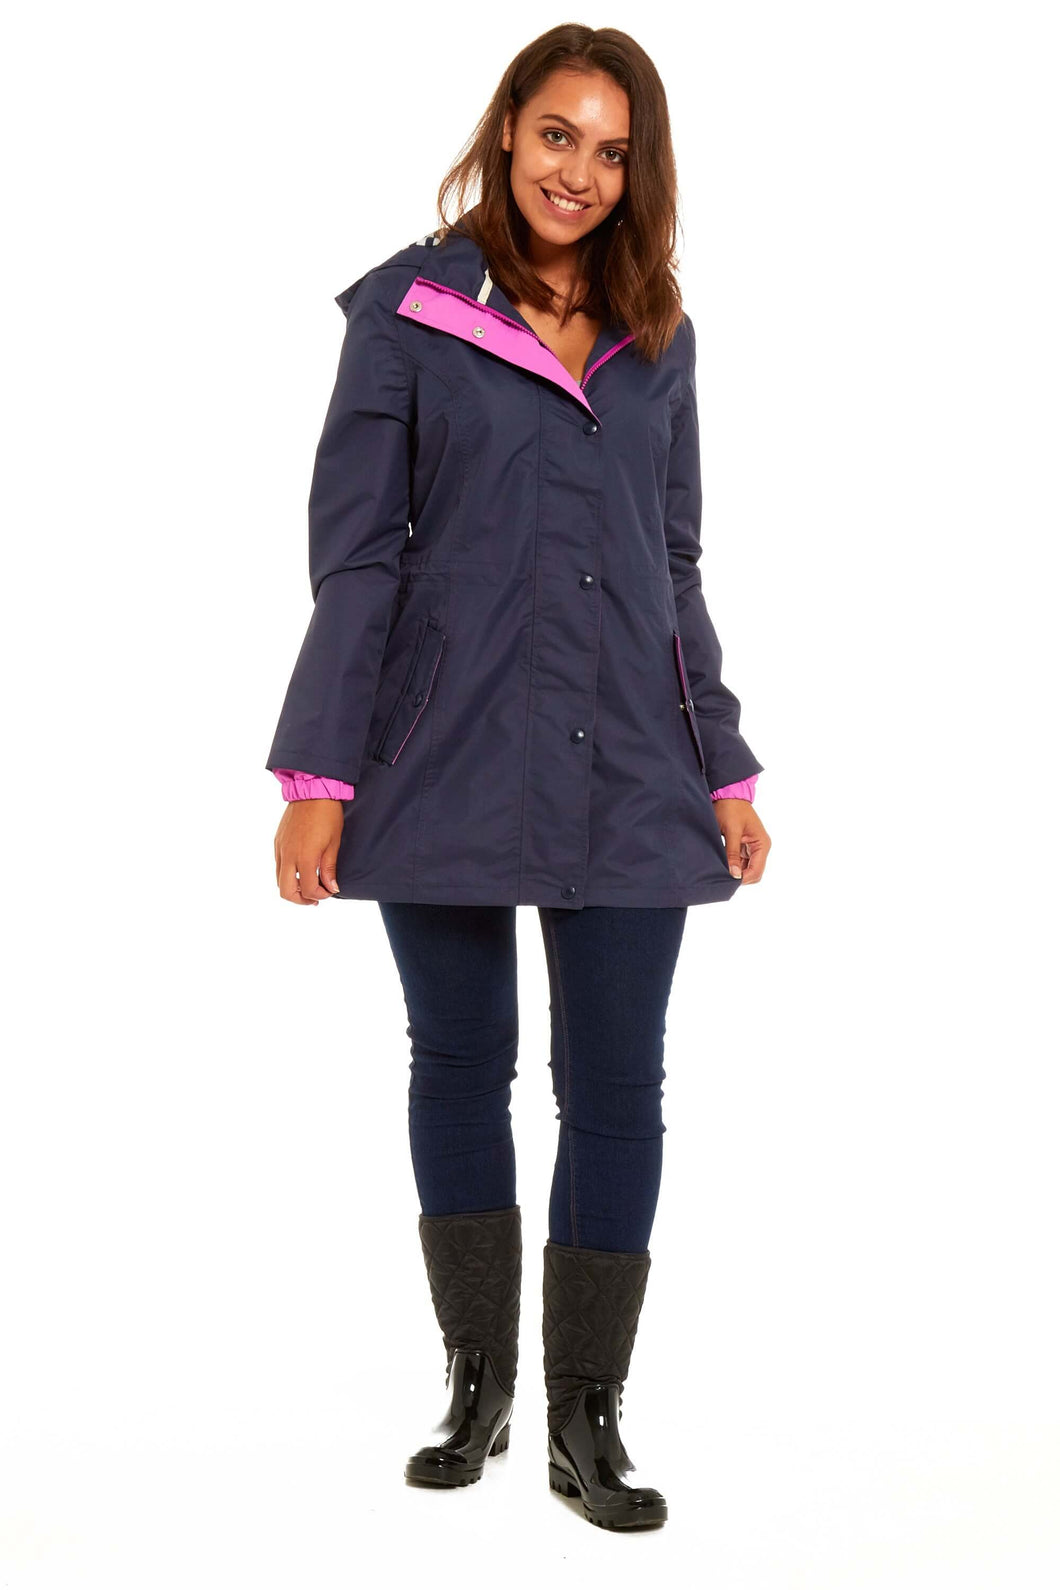 Arctic Storm Haswell Ladies Waterproof Jacket